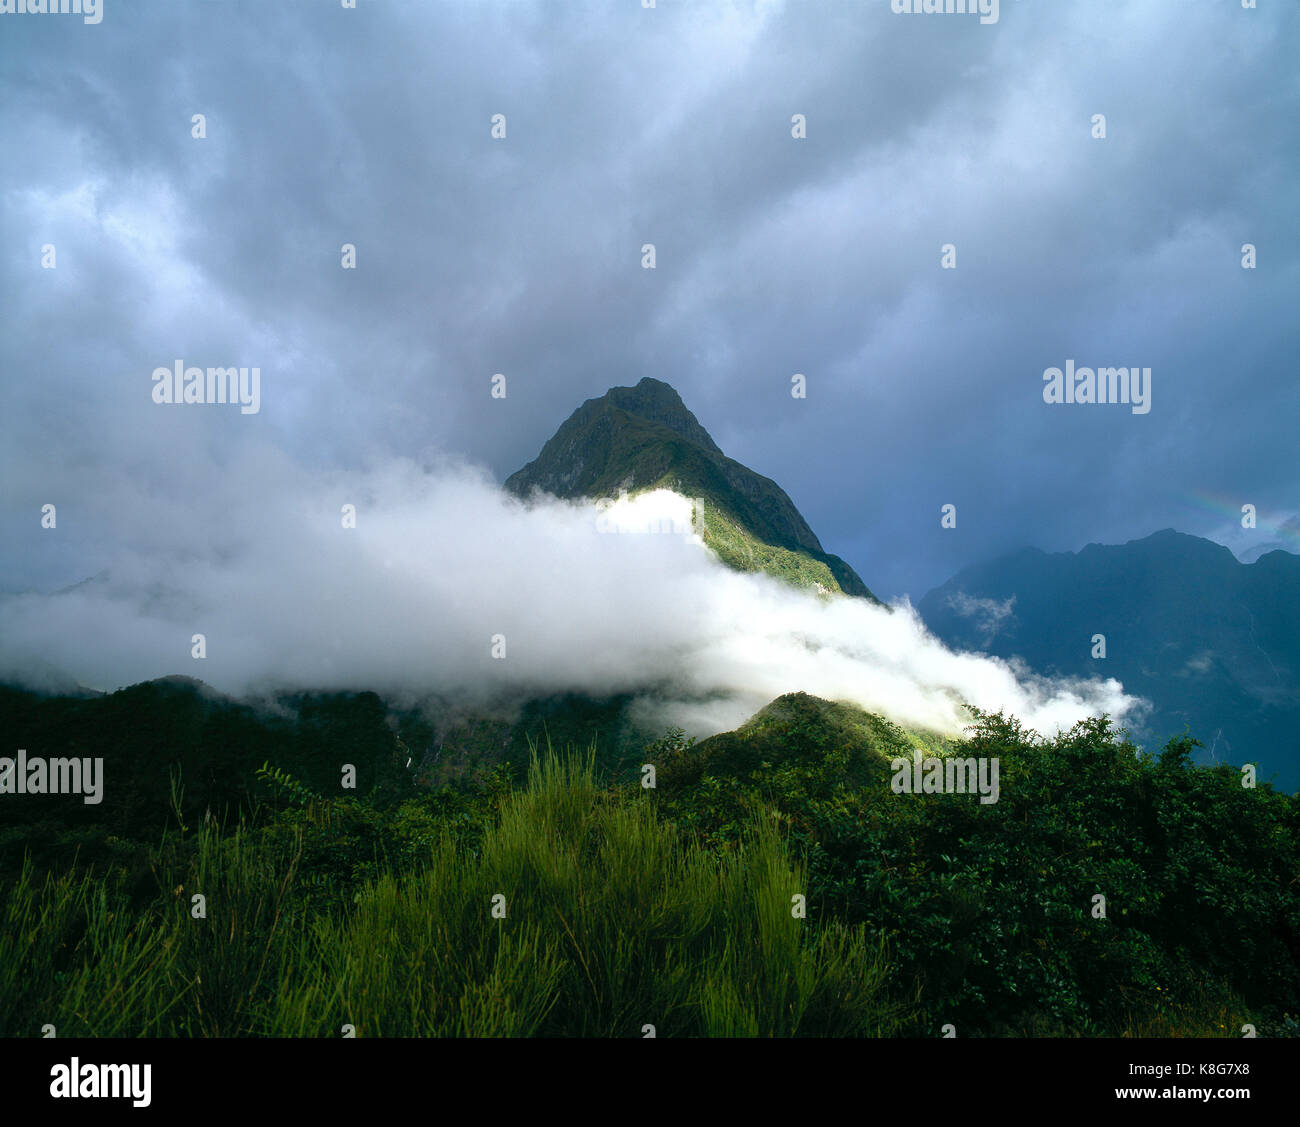 New Zealand. Milford Sound. Low level cloud over mountain. - Stock Image